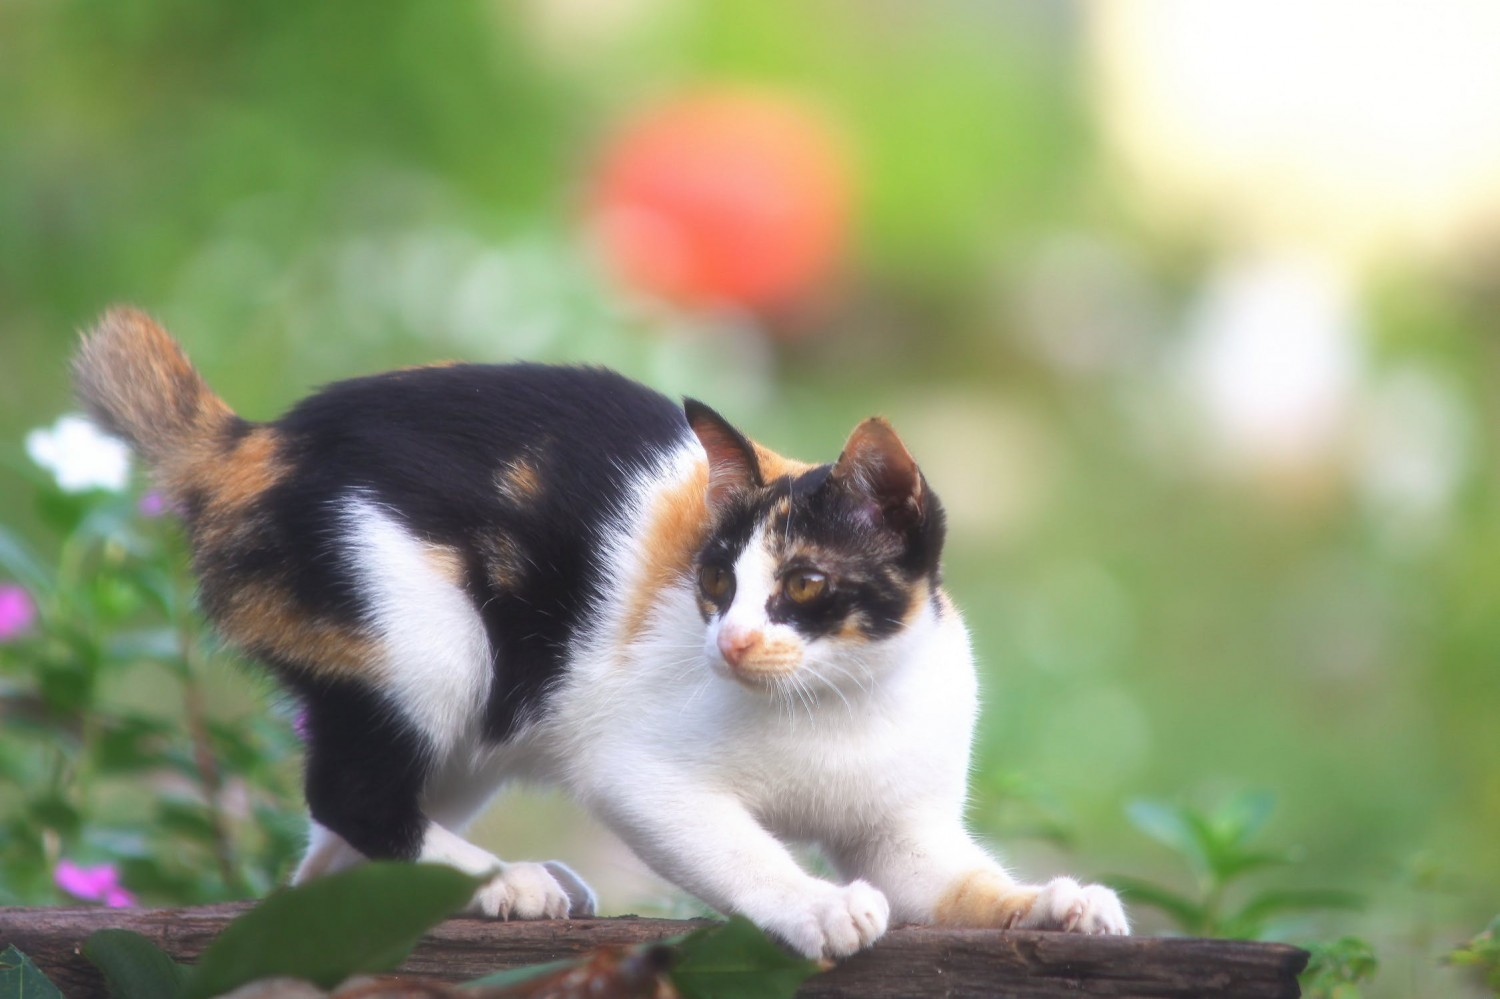 Short tailed calico cat scratching outside